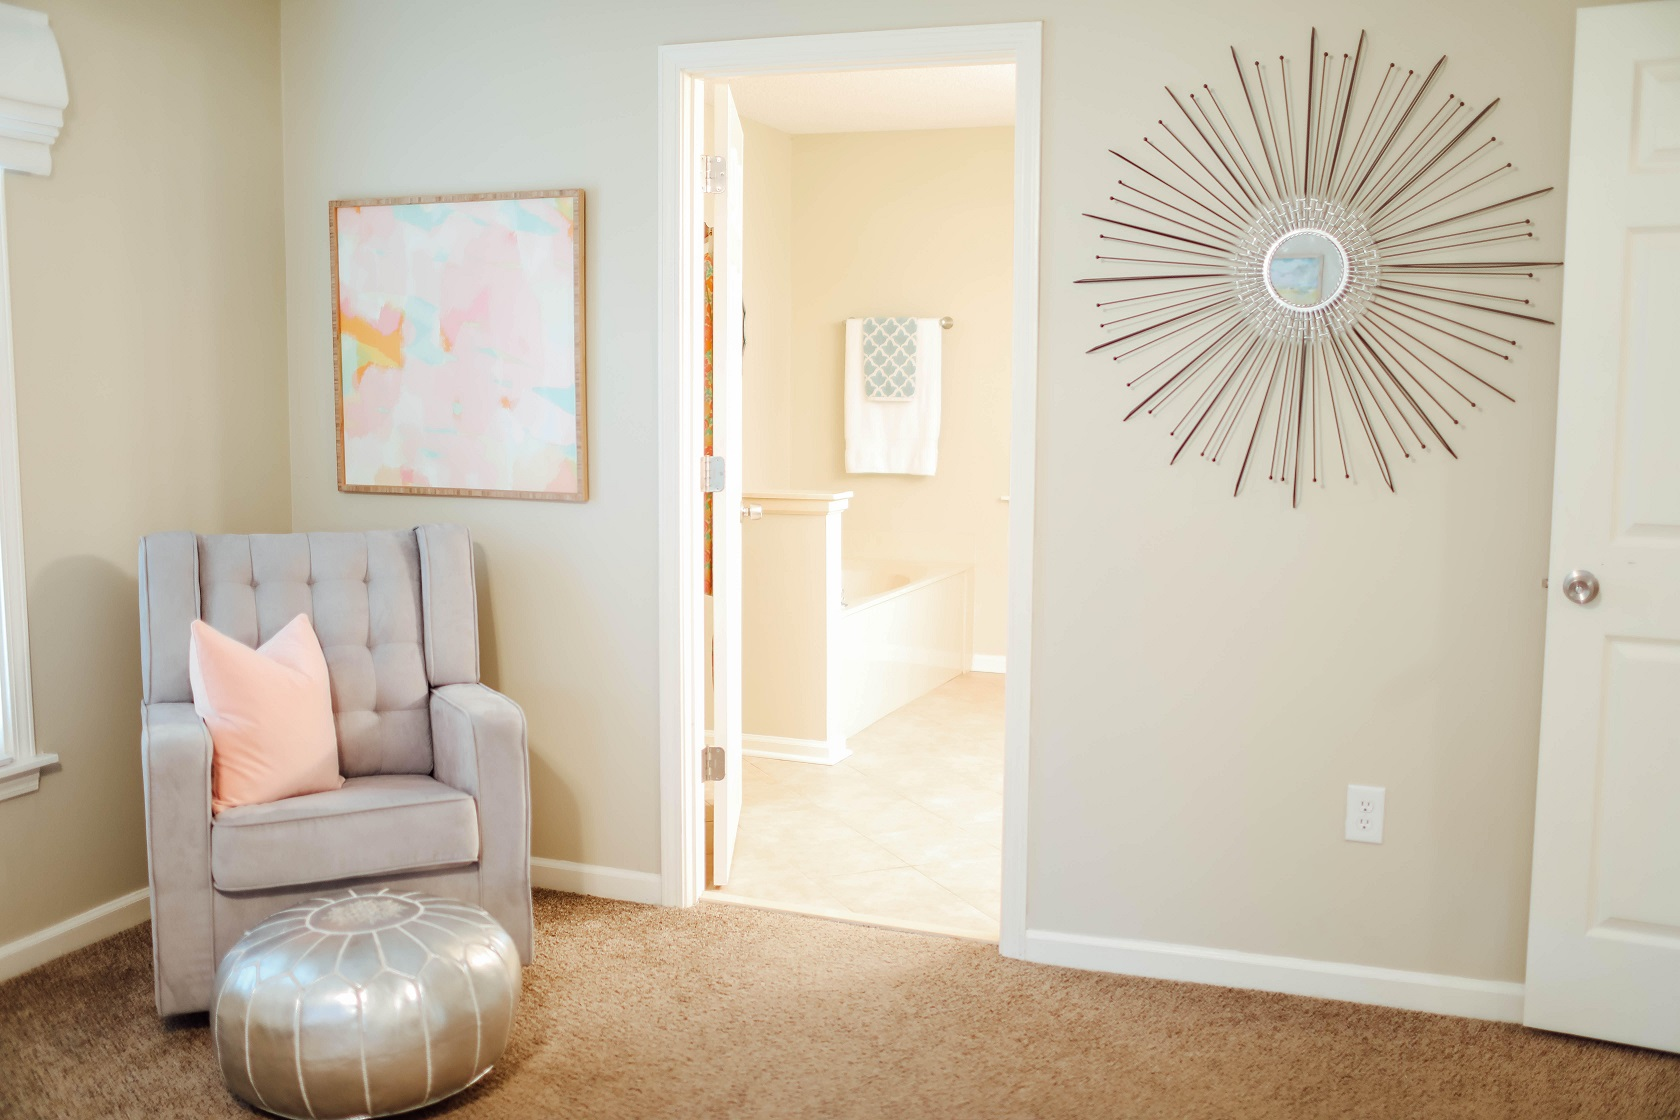 My Master Bedroom Update & Bathroom Update for Summer featured by popular lifestyle blogger Walking in Memphis in High Heel